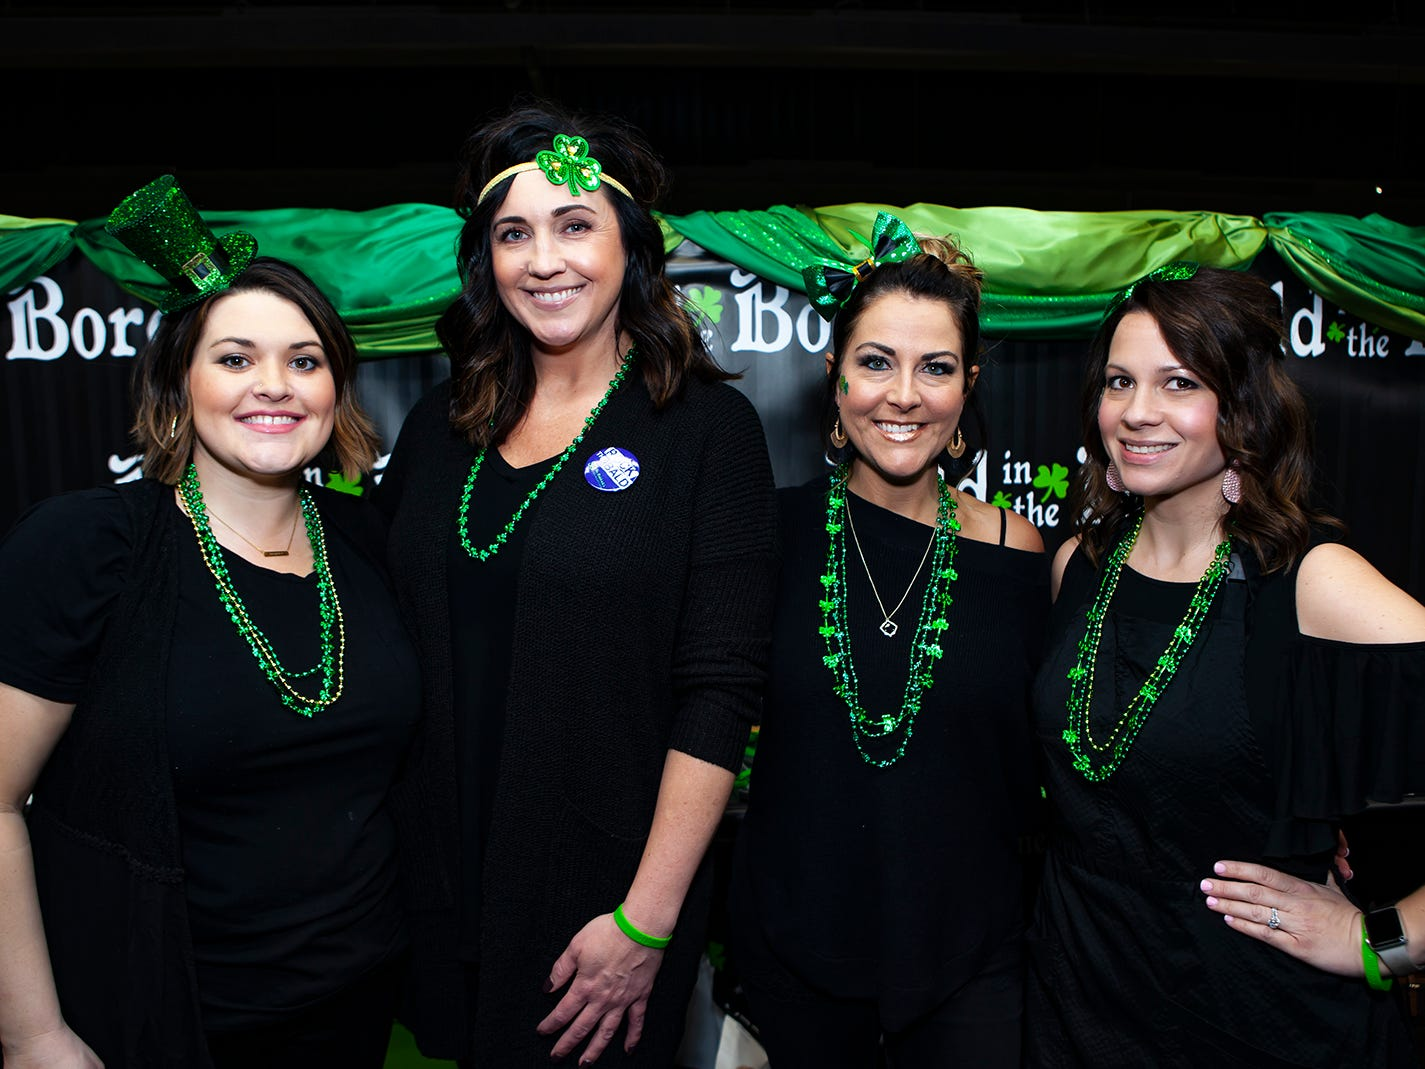 Brittnie Bern, Tracy Tucker, Darlene Skaggs  and Lisa Gooch from Beehive Salon volunteered at the ninth annual Bald in the Boro fundraiser for the St. Baldrick's Foundation. The event was held Friday, March 15, 2019 at Lanes, Trains and Automobiles in Murfreesboro.